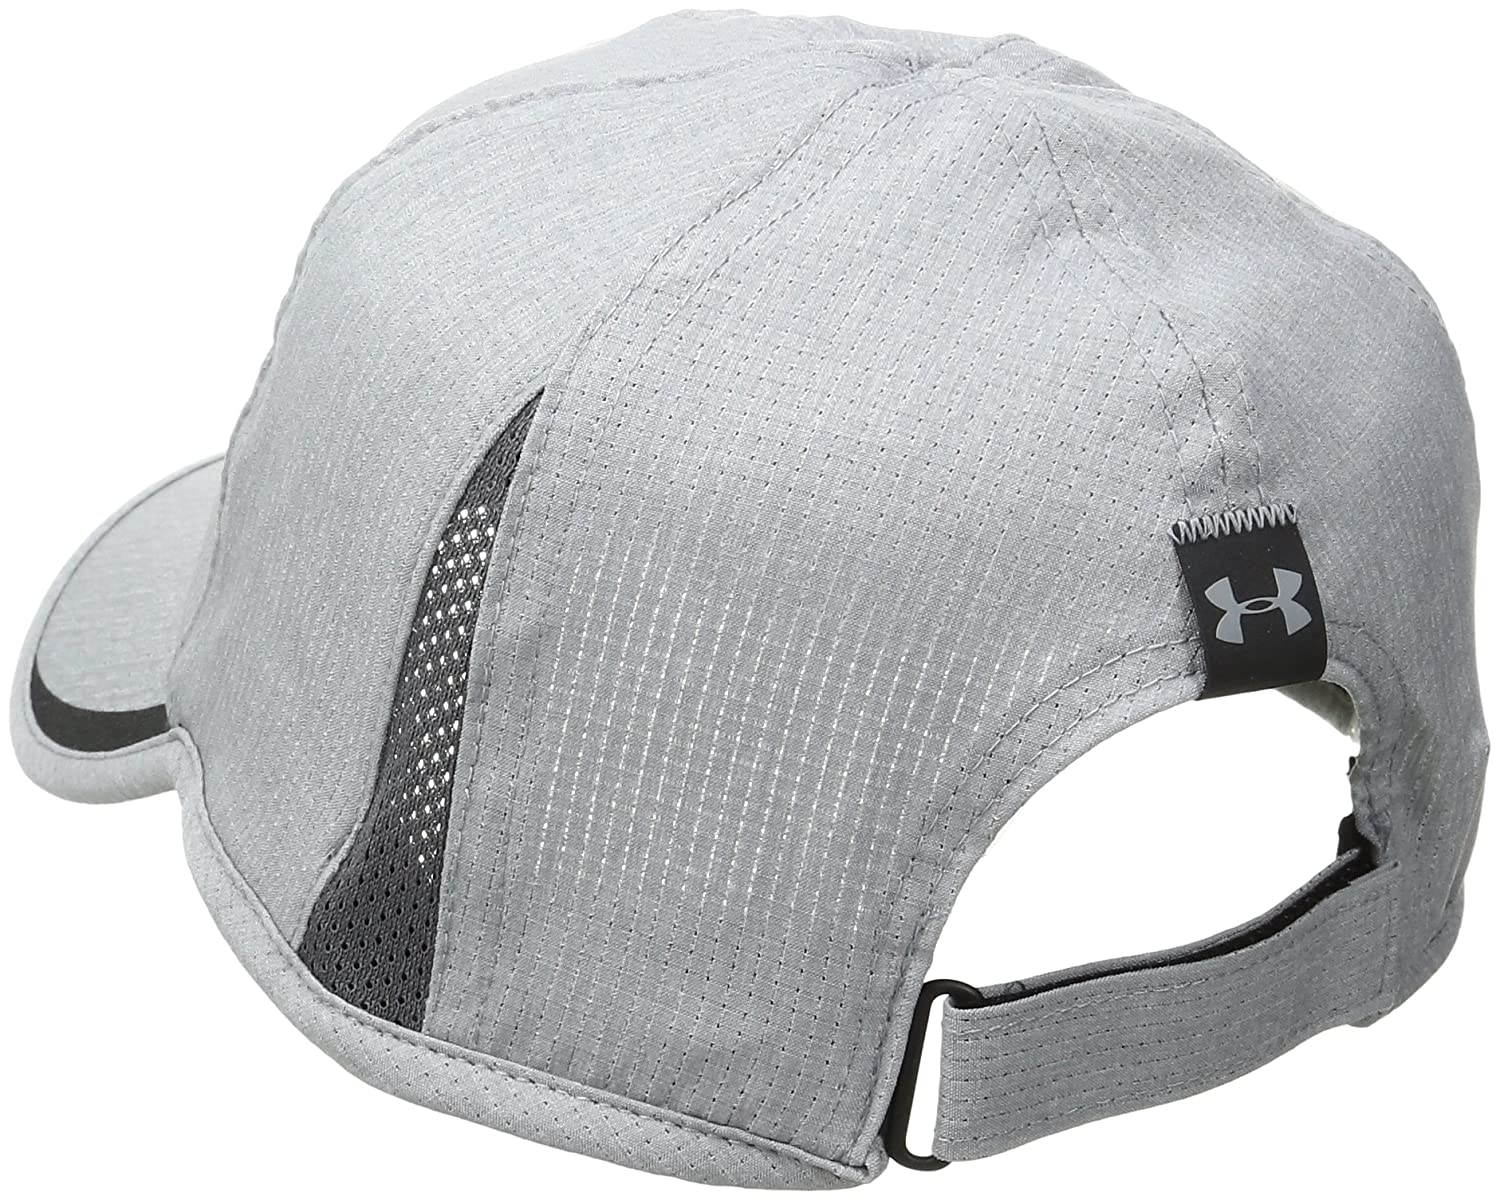 Under Armour Mens Shadow ArmourVent Cap Steel 035 //Black One Size UNDRJ 1278207